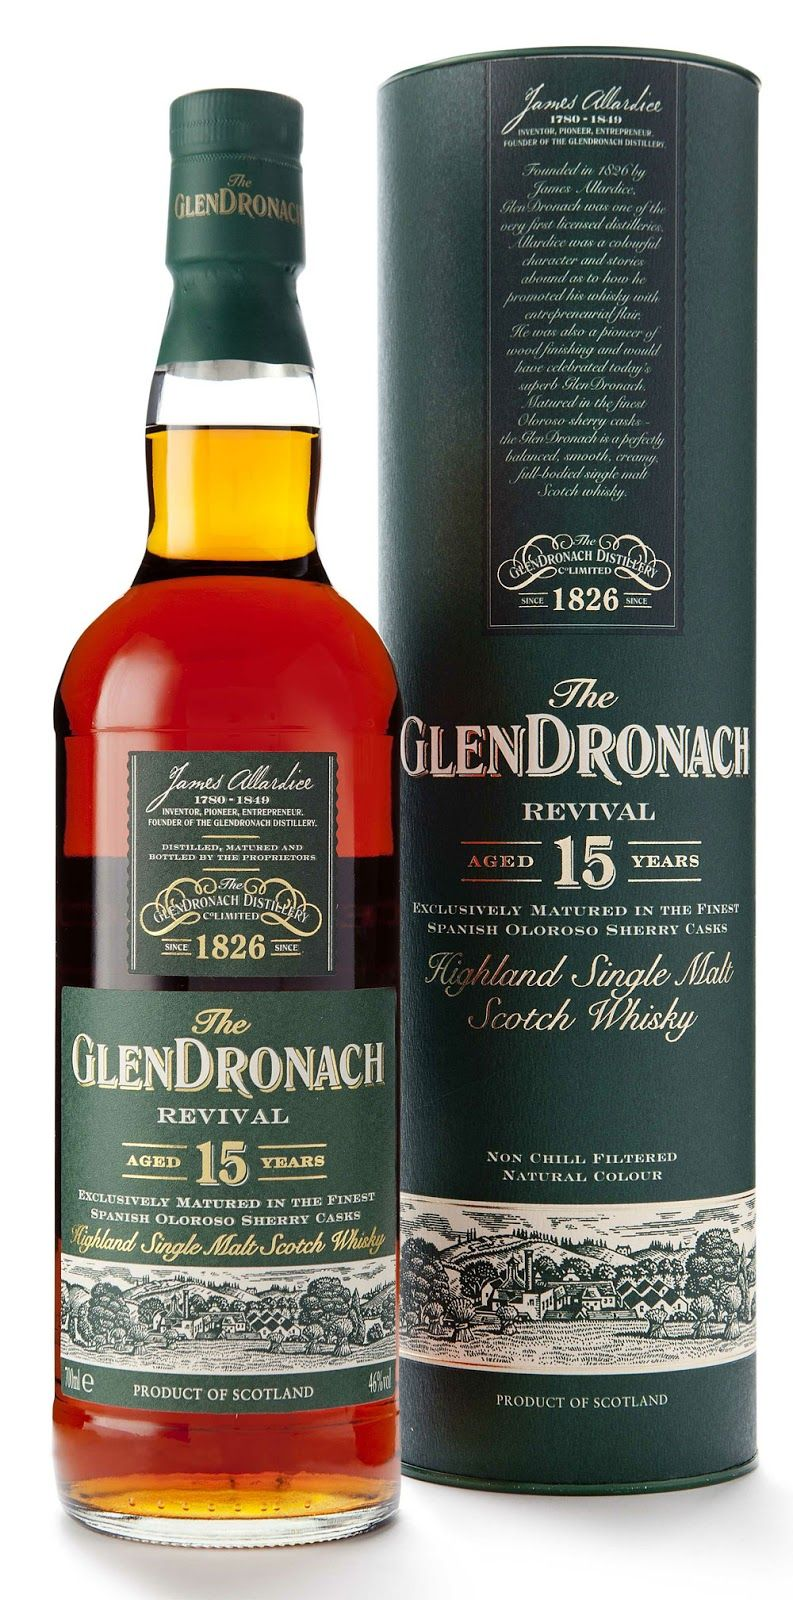 GlenDronach 15 yo (bottled 2015), Revival, 46 % - SUNDAY, DECEMBER 20, 2015 - The Whisky Viking